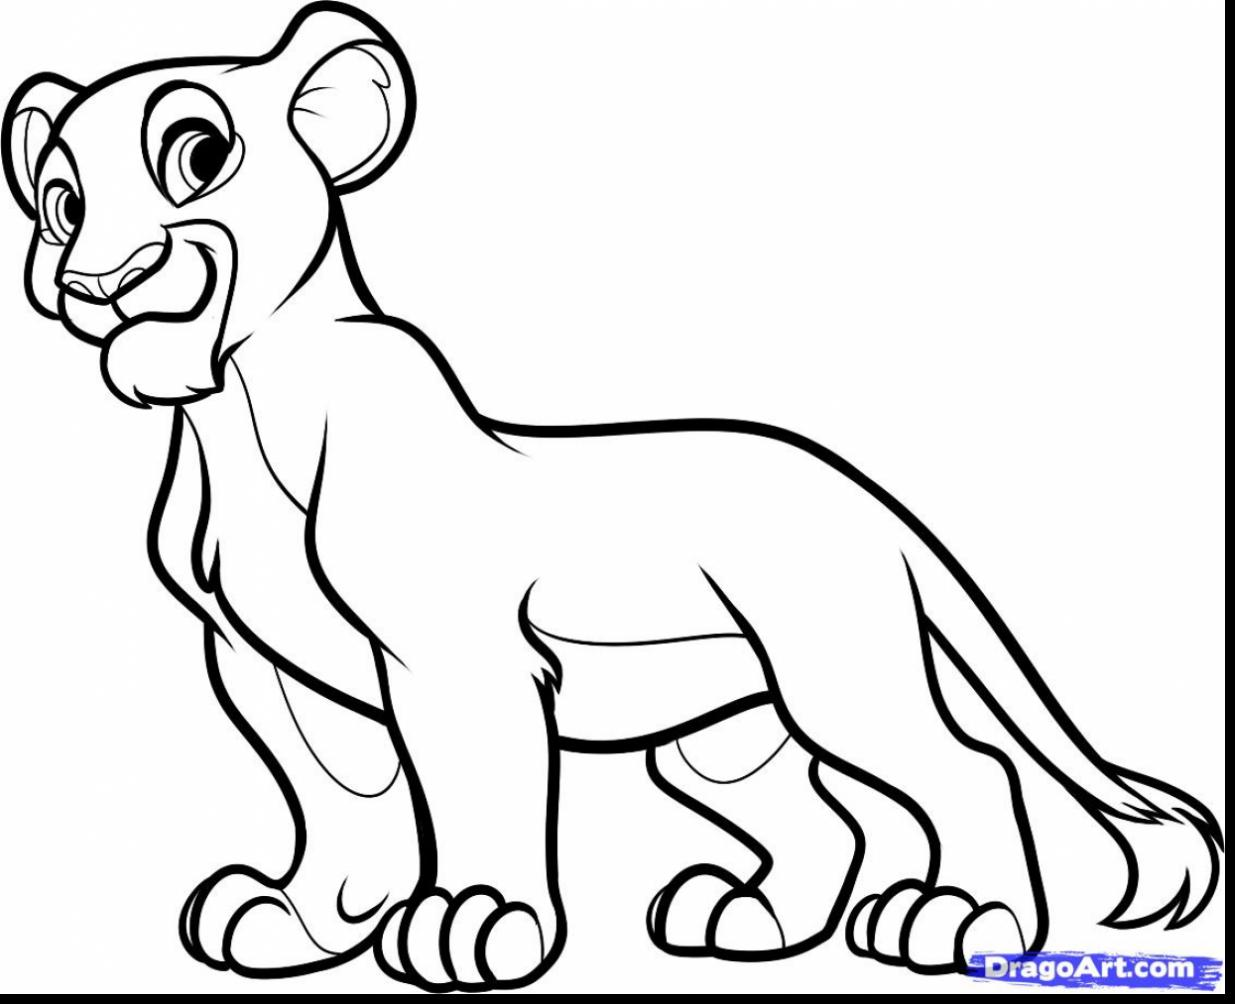 1235x1004 Best Free Lion King Scar Coloring Pages Design